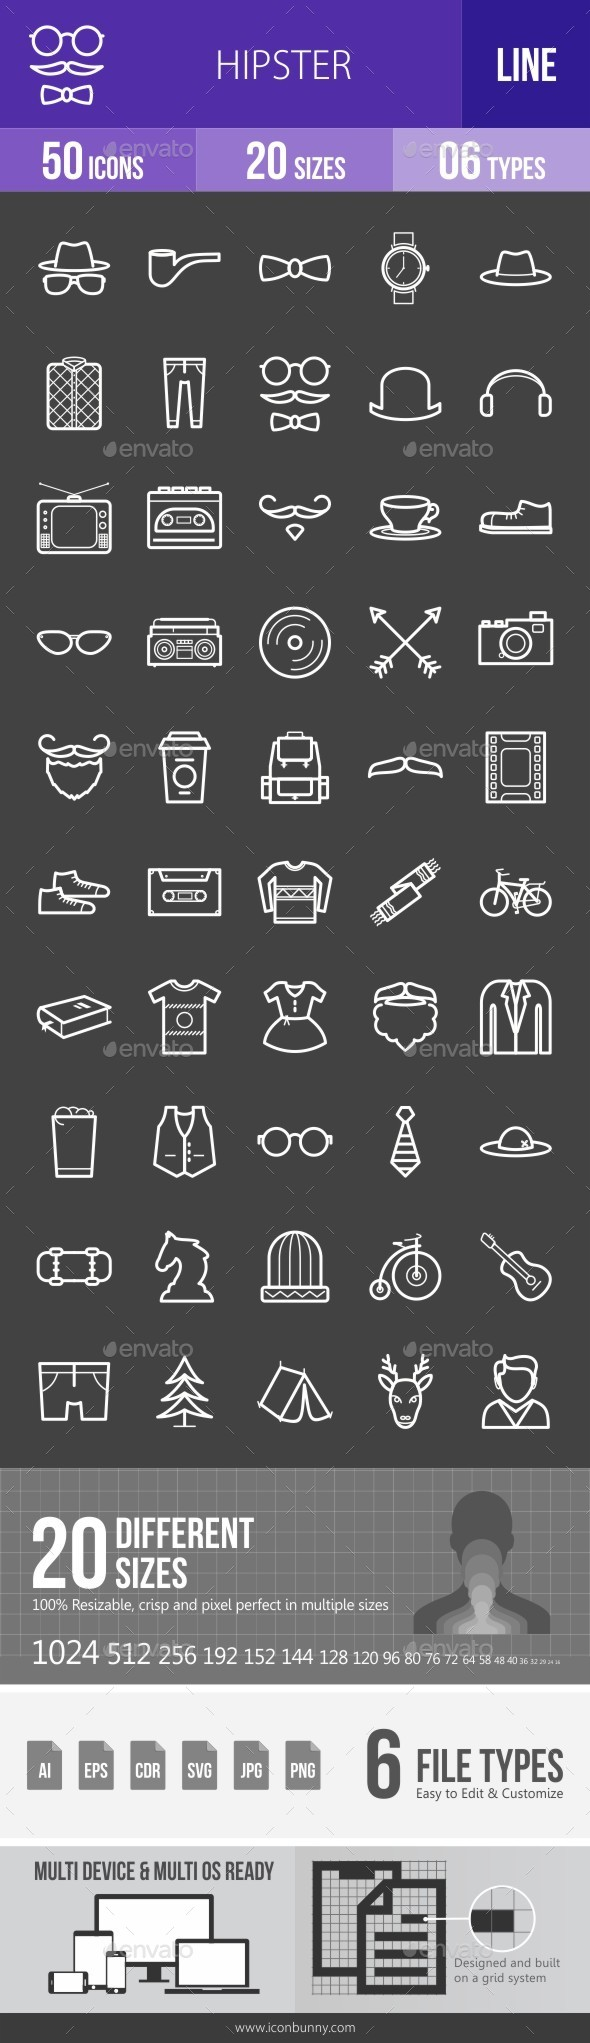 Hipster Line Inverted Icons - Icons